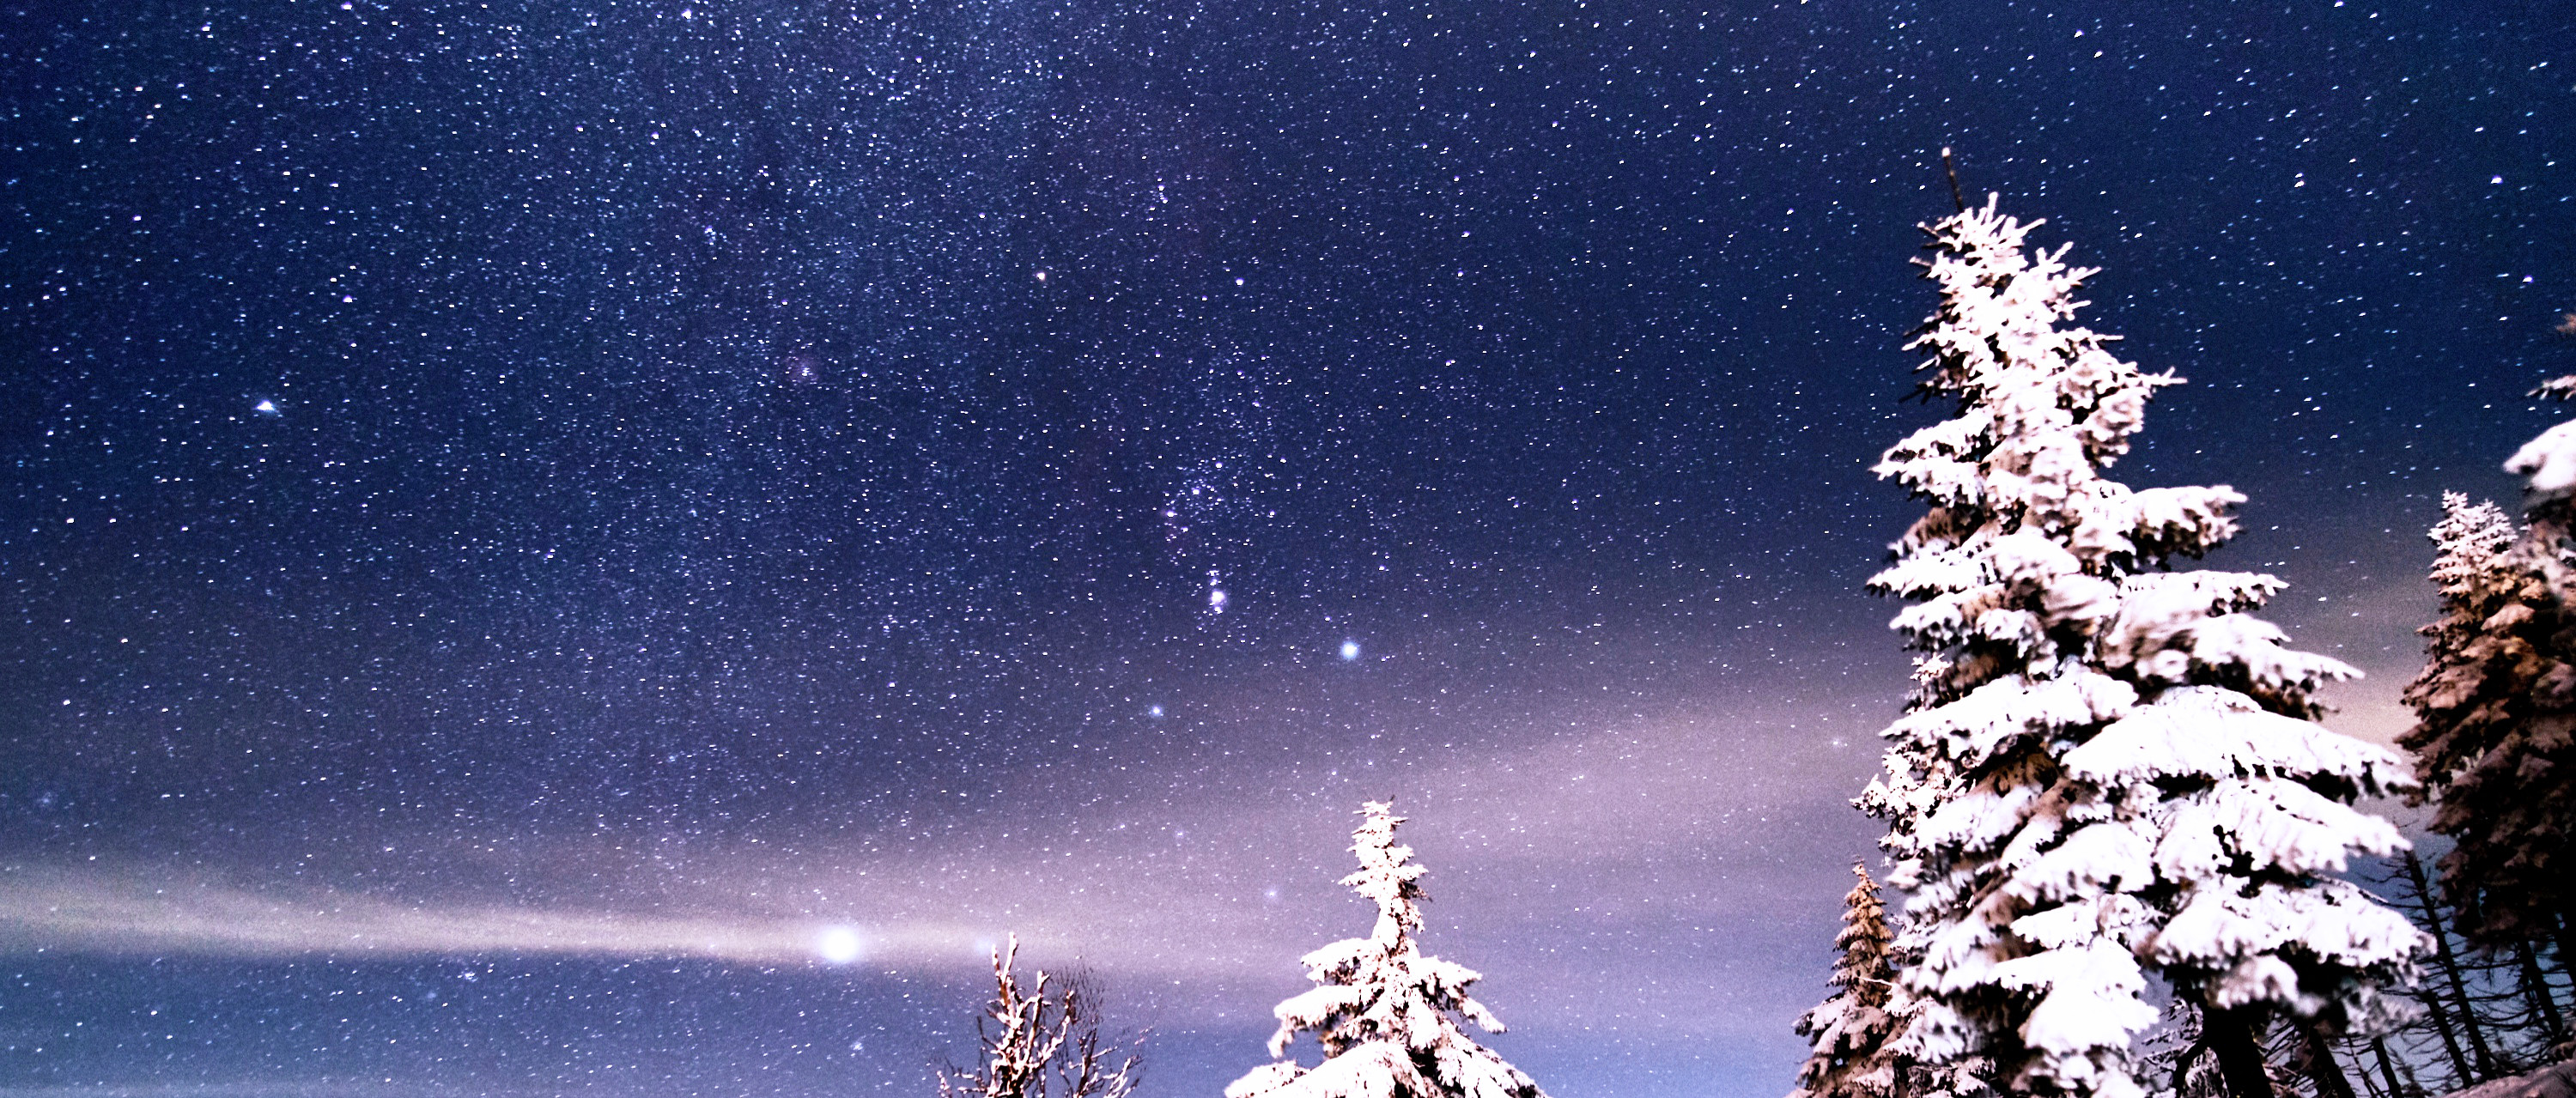 5 Winter Astrophotography Targets For Beginners